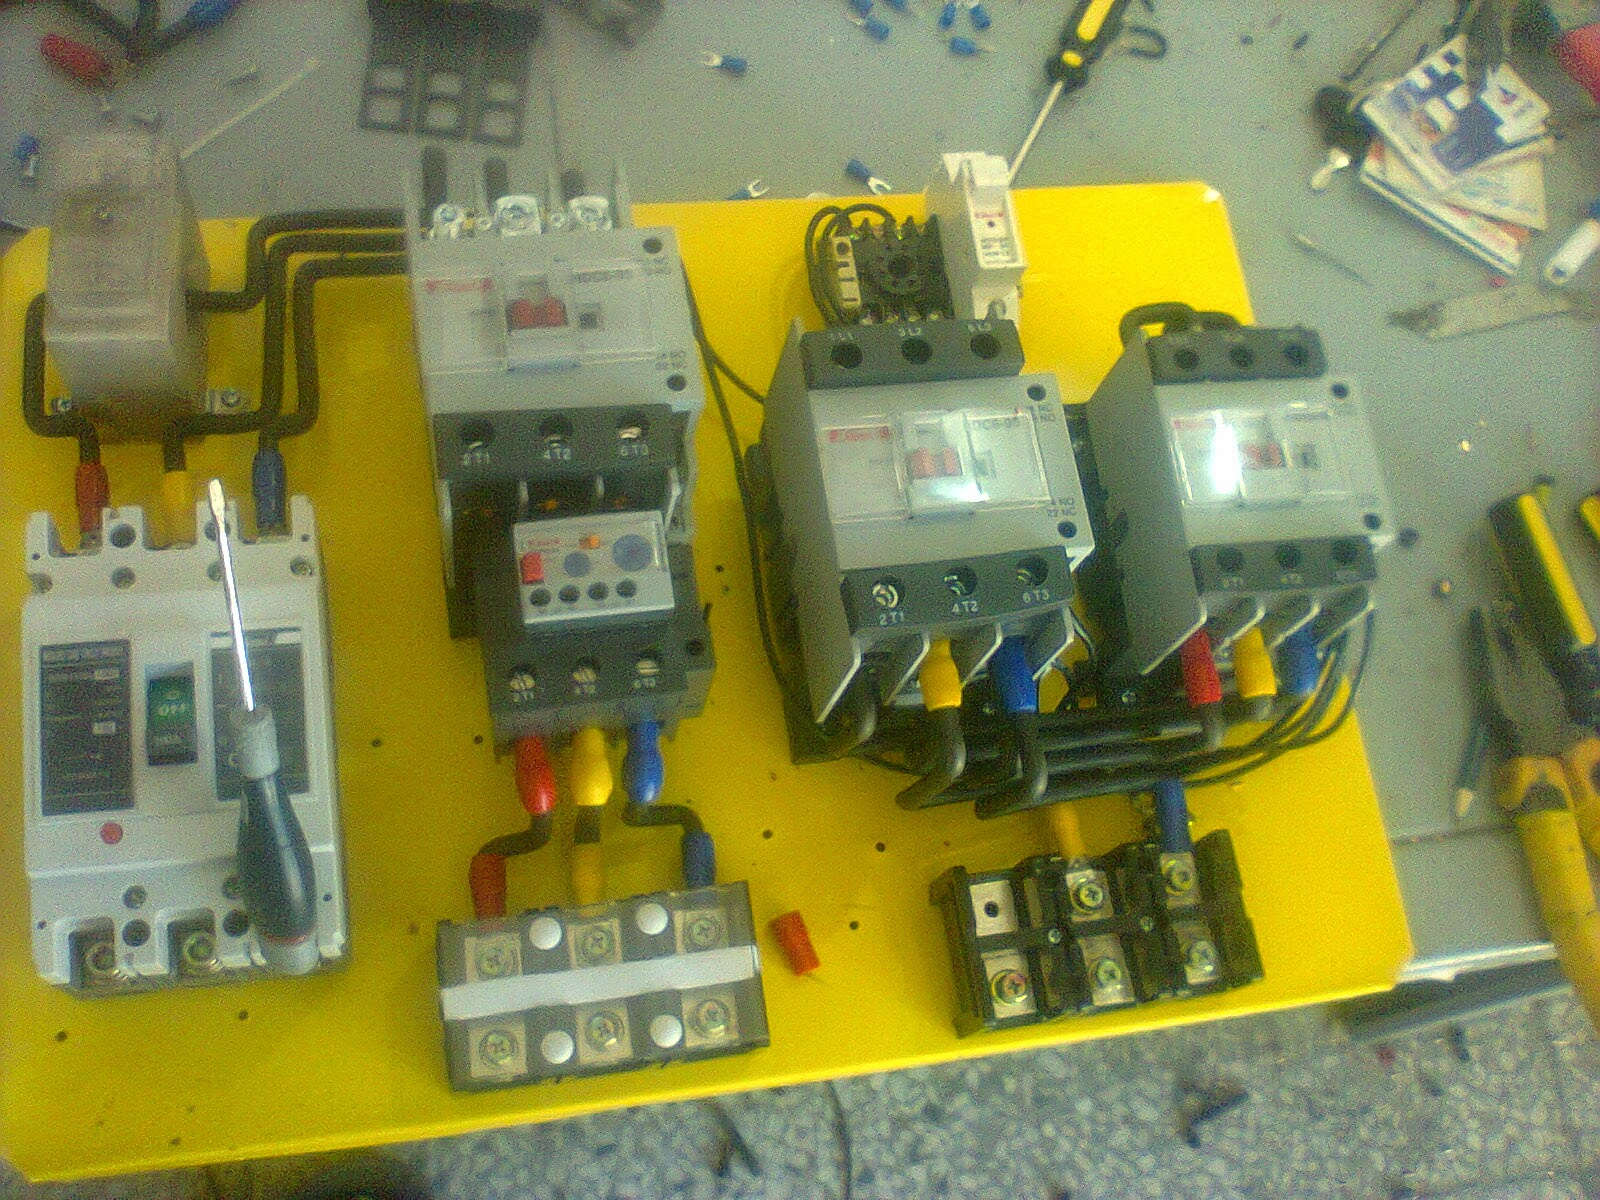 Star Delta 3 Phase Motor Automatic Starter With Timer Electrical Circuit Of A Direct On Line Dol Electric Controller Close The Contactor Either Stop Buttons Will Open Note That One Acts As Switch For Start Button